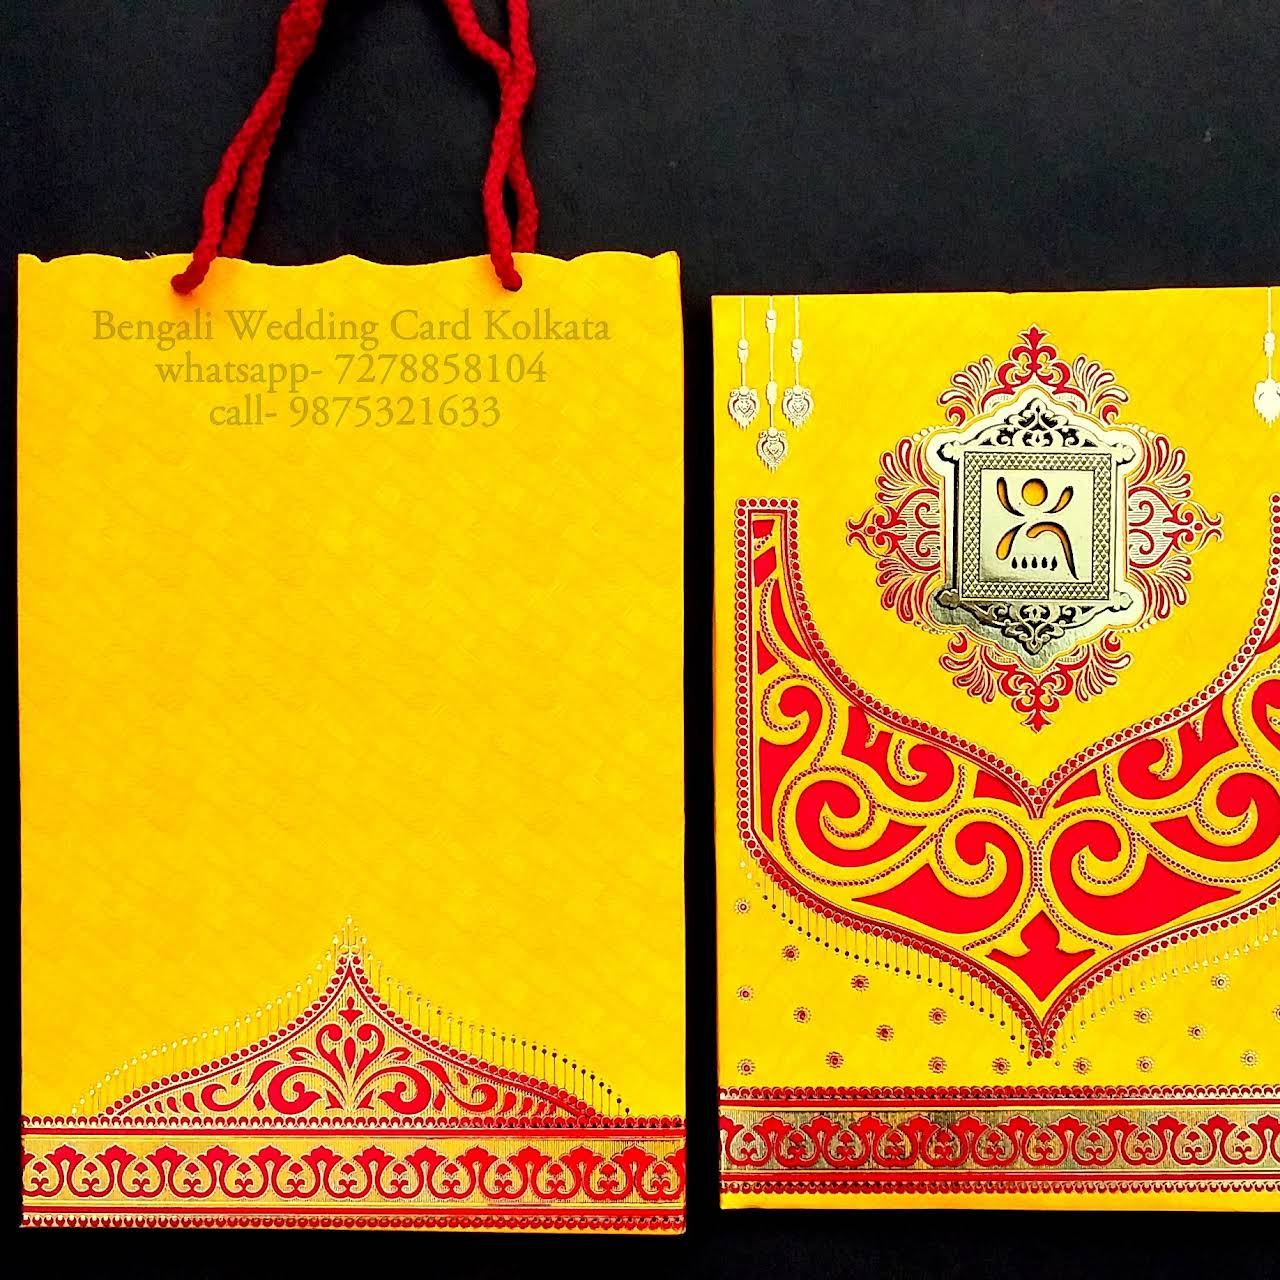 Bengali Wedding Card Best Bengali Wedding Cards Invitation Cards Digital E Card Online Shop In Kolkata India With Home Delivery Both Online Offline